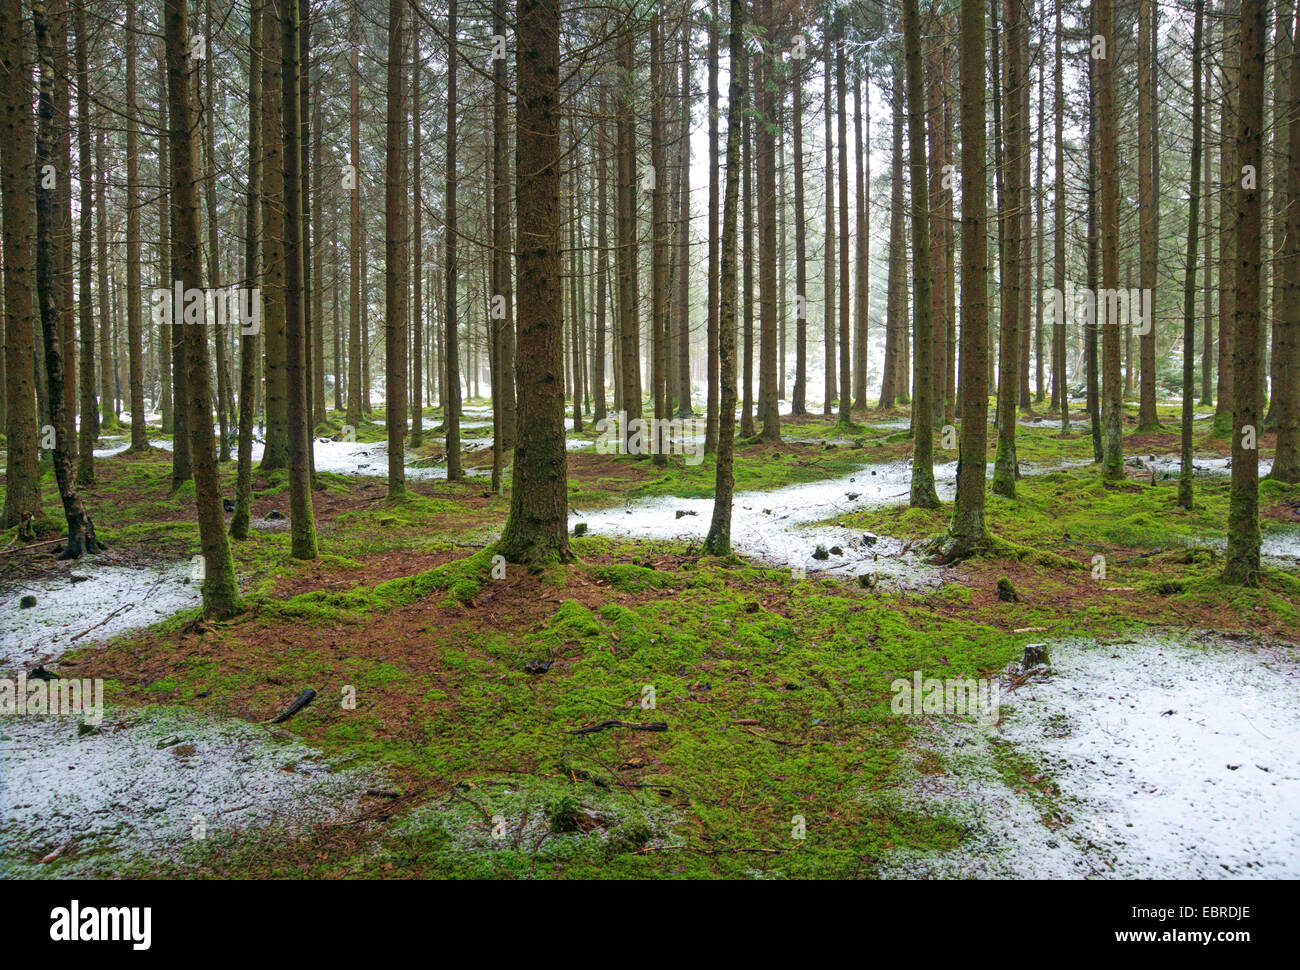 spruce (Picea spec.), view in a spruce forest with mossy forest ground and a little bit fresh snow, Germany, Bavaria, Stock Photo